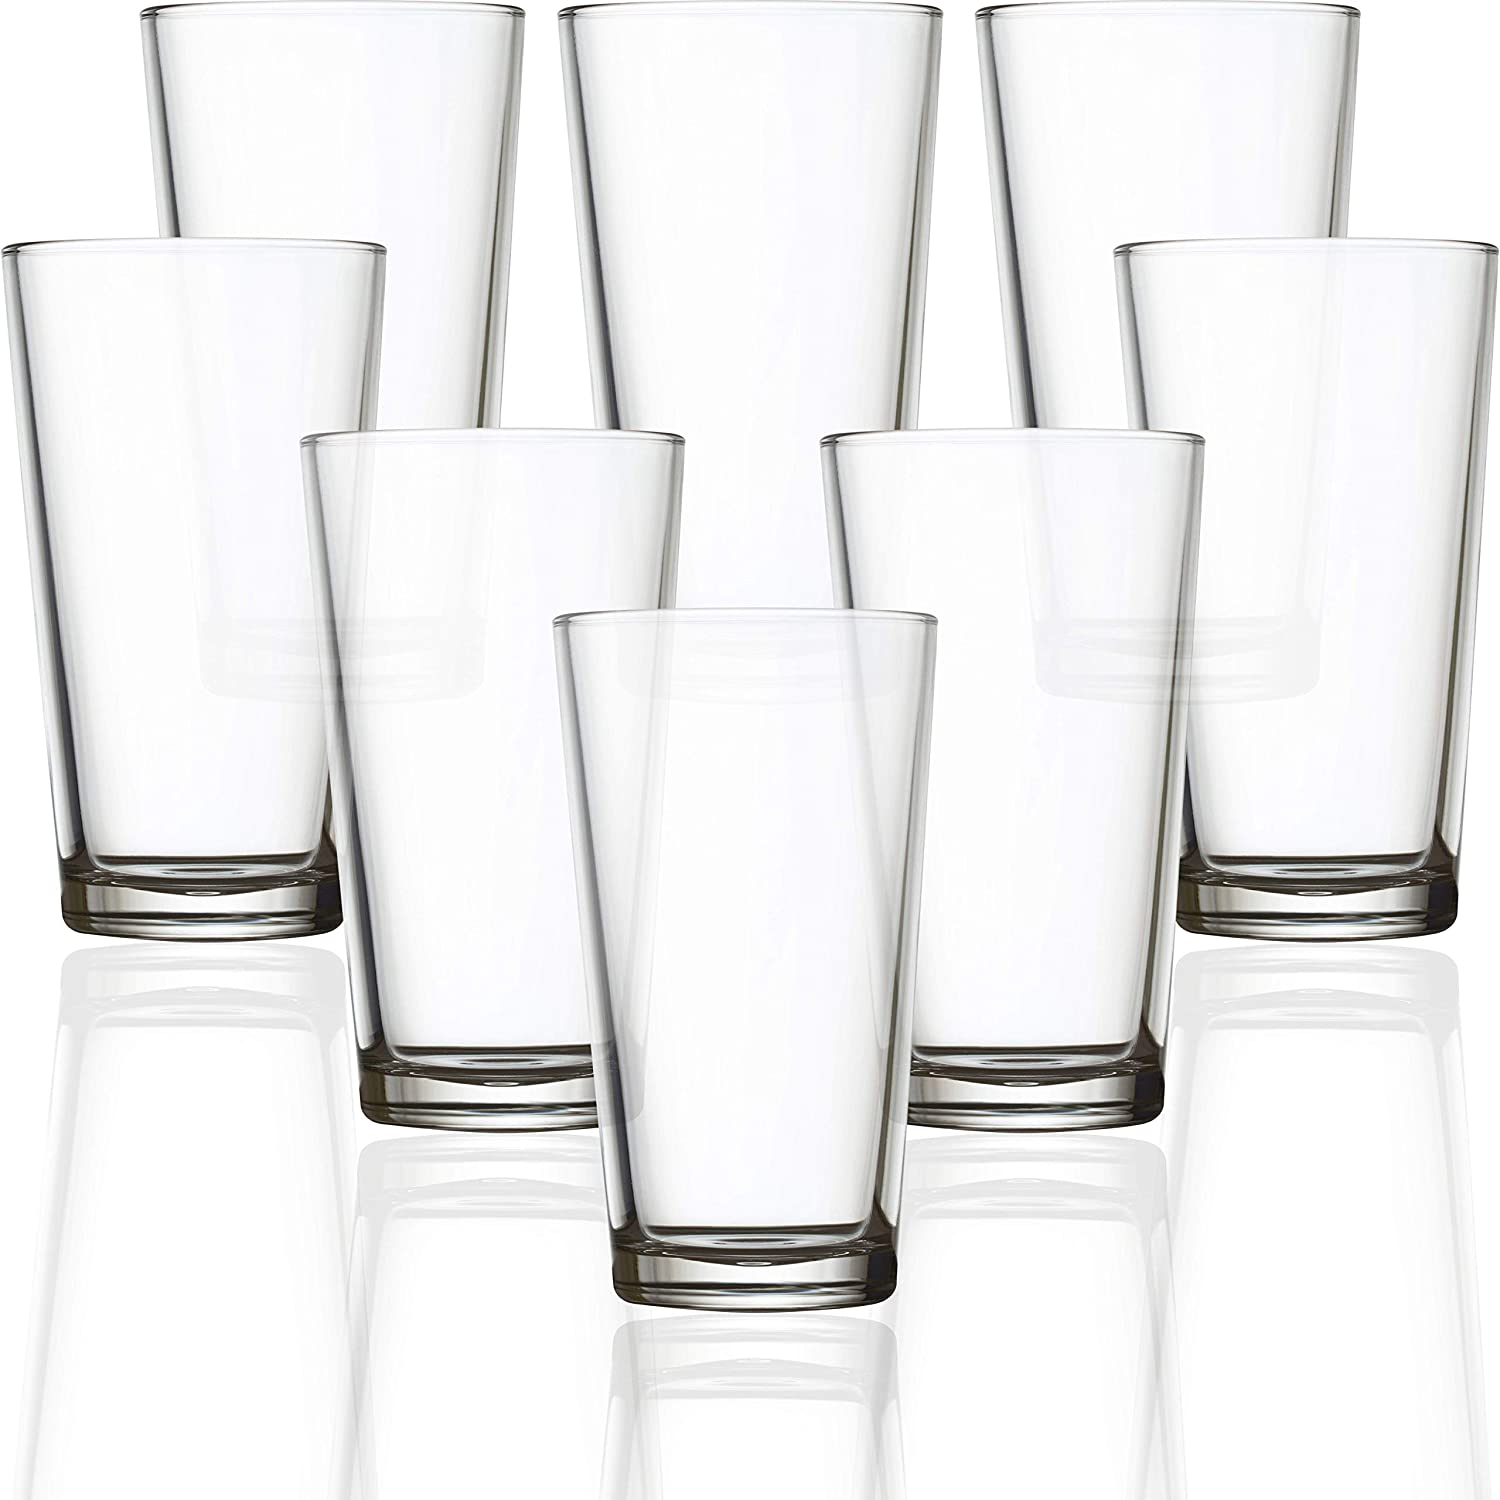 Circleware Simple Home Heavy Base Highball Tumblers, Huge Set of 8 Drinking Glasses Cups, Kitchen Entertainment Ice Tea Beverage Glassware for Water, Juice, Beer and Bar Decor Gift, 15.75 oz, Clear